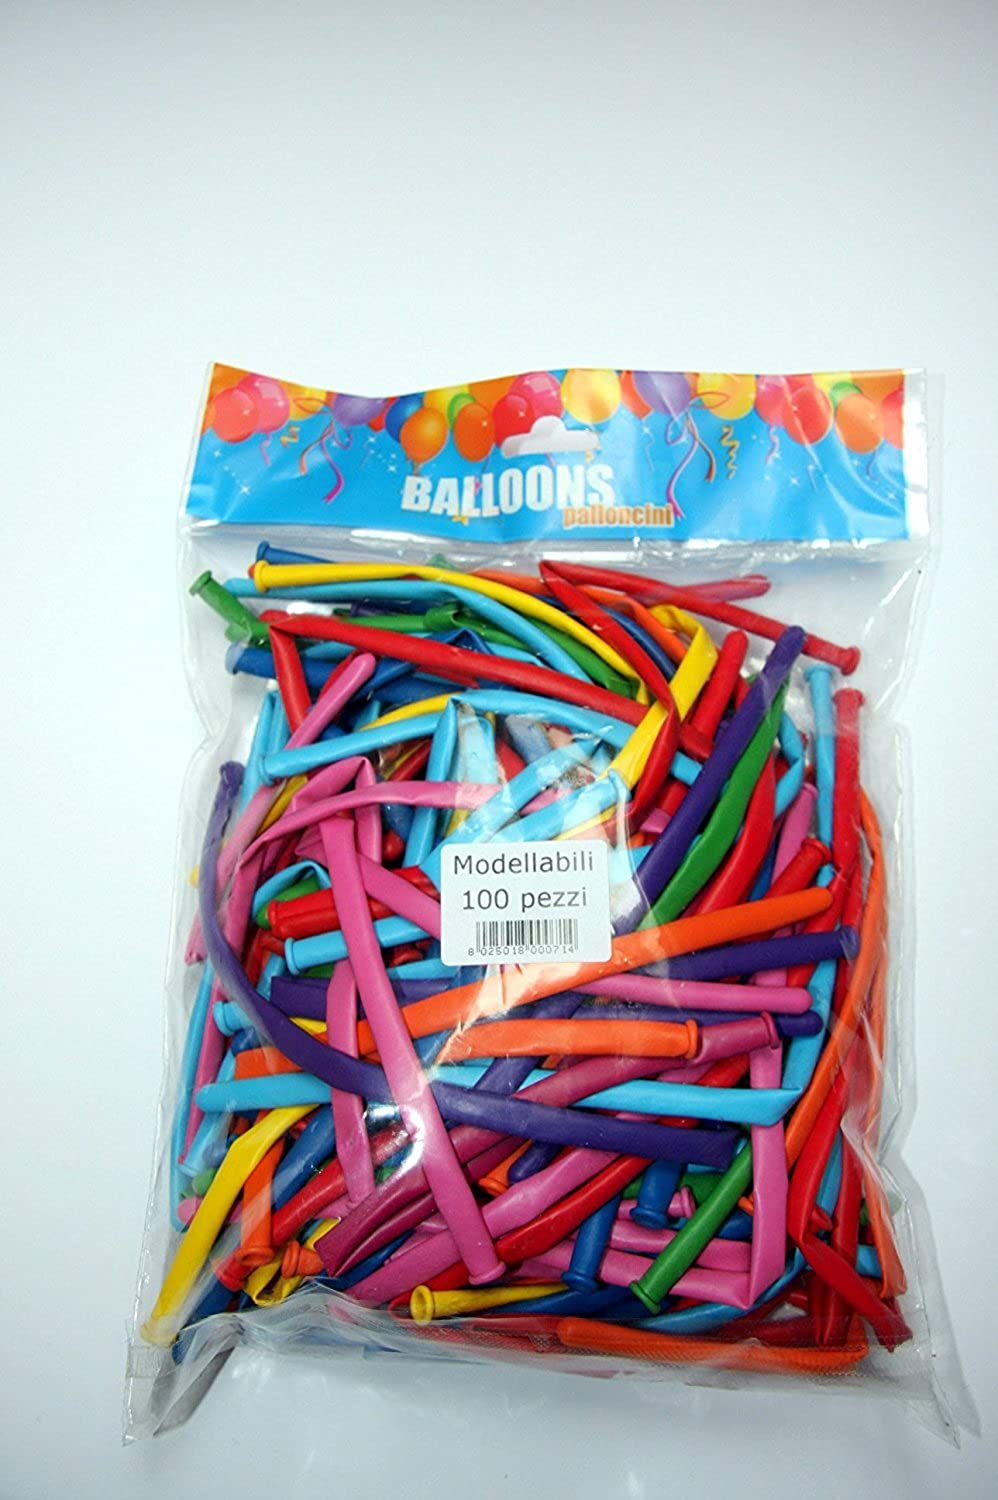 Balloons modelling multicolor, 10 in a Box (Pack of 100) 1000 Balloons Total